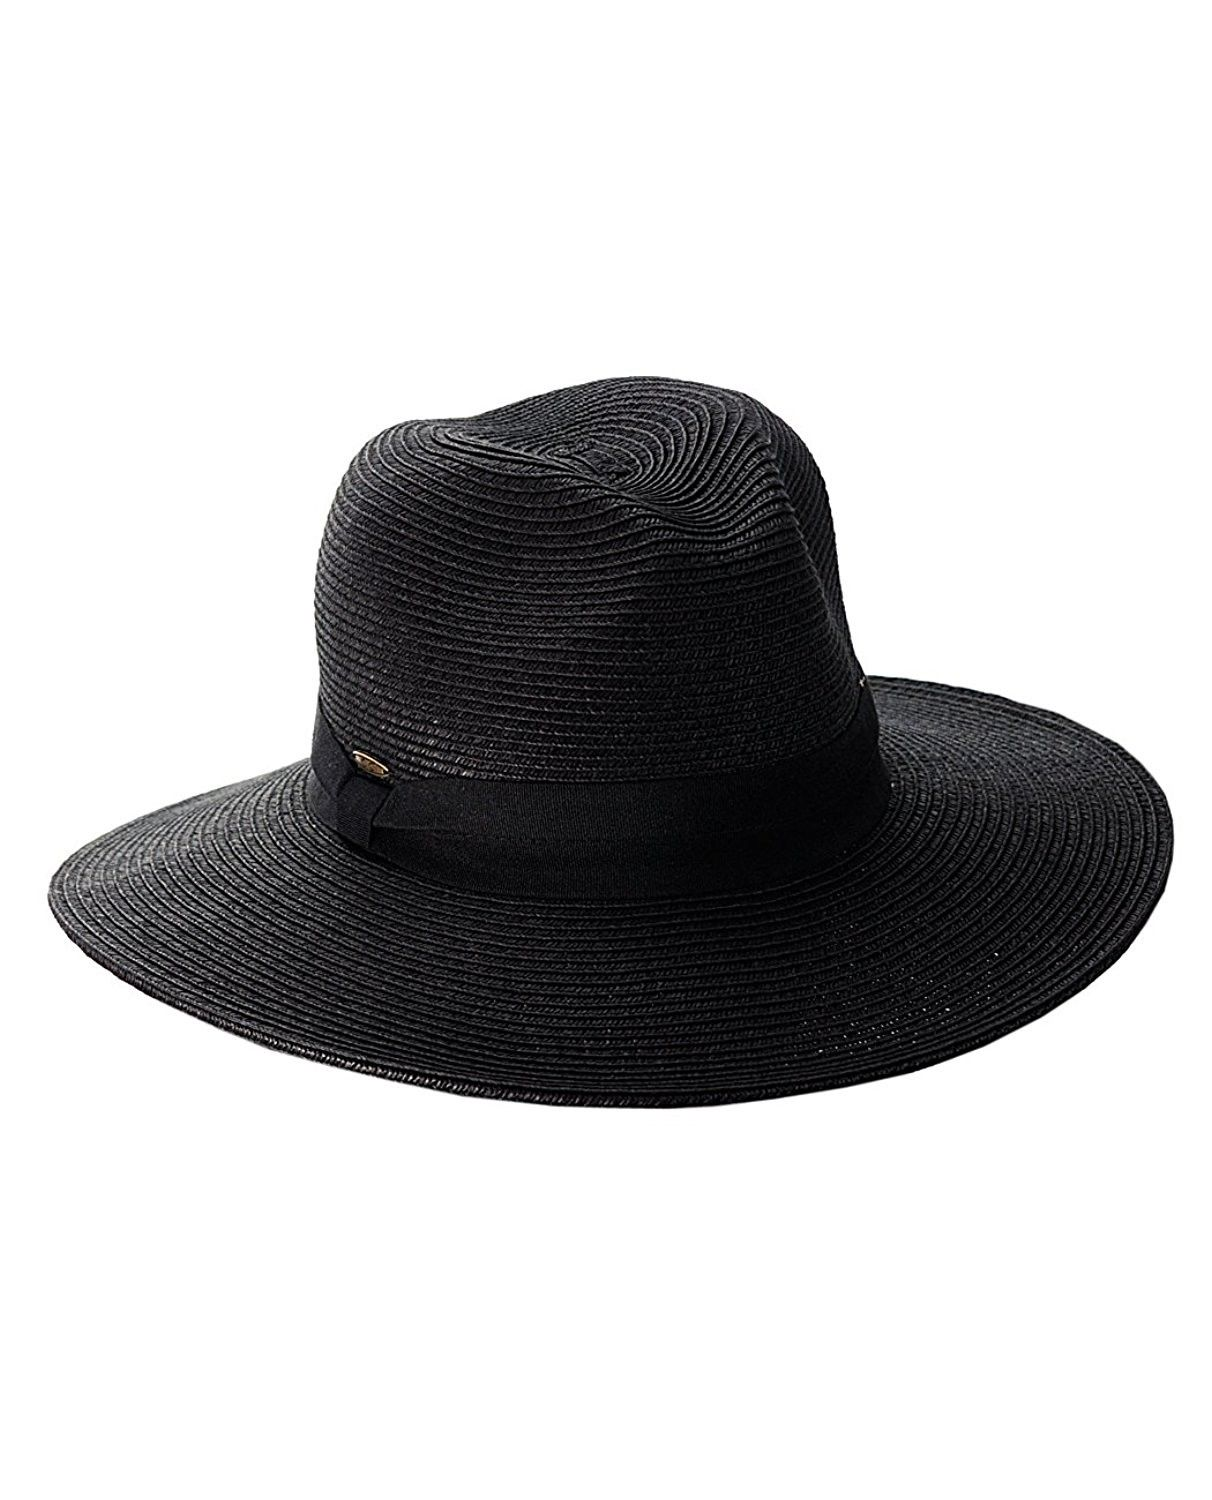 Lightweight Solid Color Band Braided Panama Fedora Sun Hat Black Co11wwyhfb1 Sun Hats Color Bands Hats